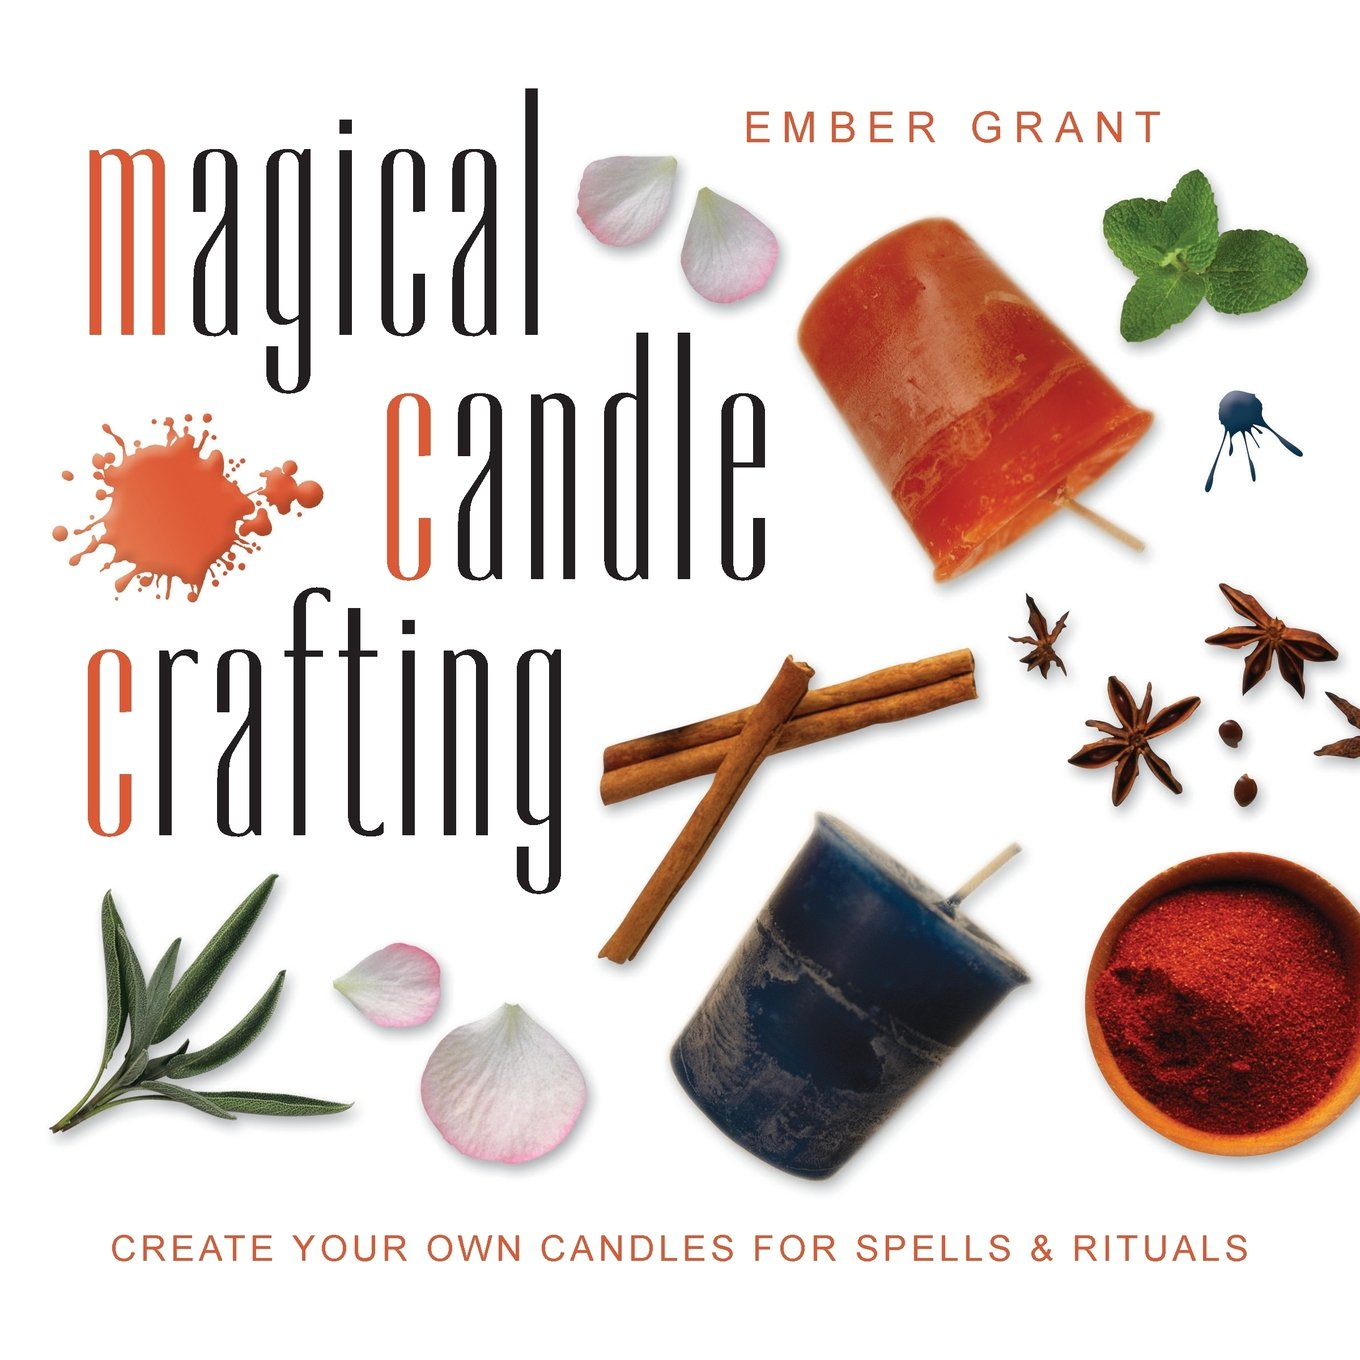 Magical Candle Crafting: Create Your Own Candles for Spells & Rituals pdf